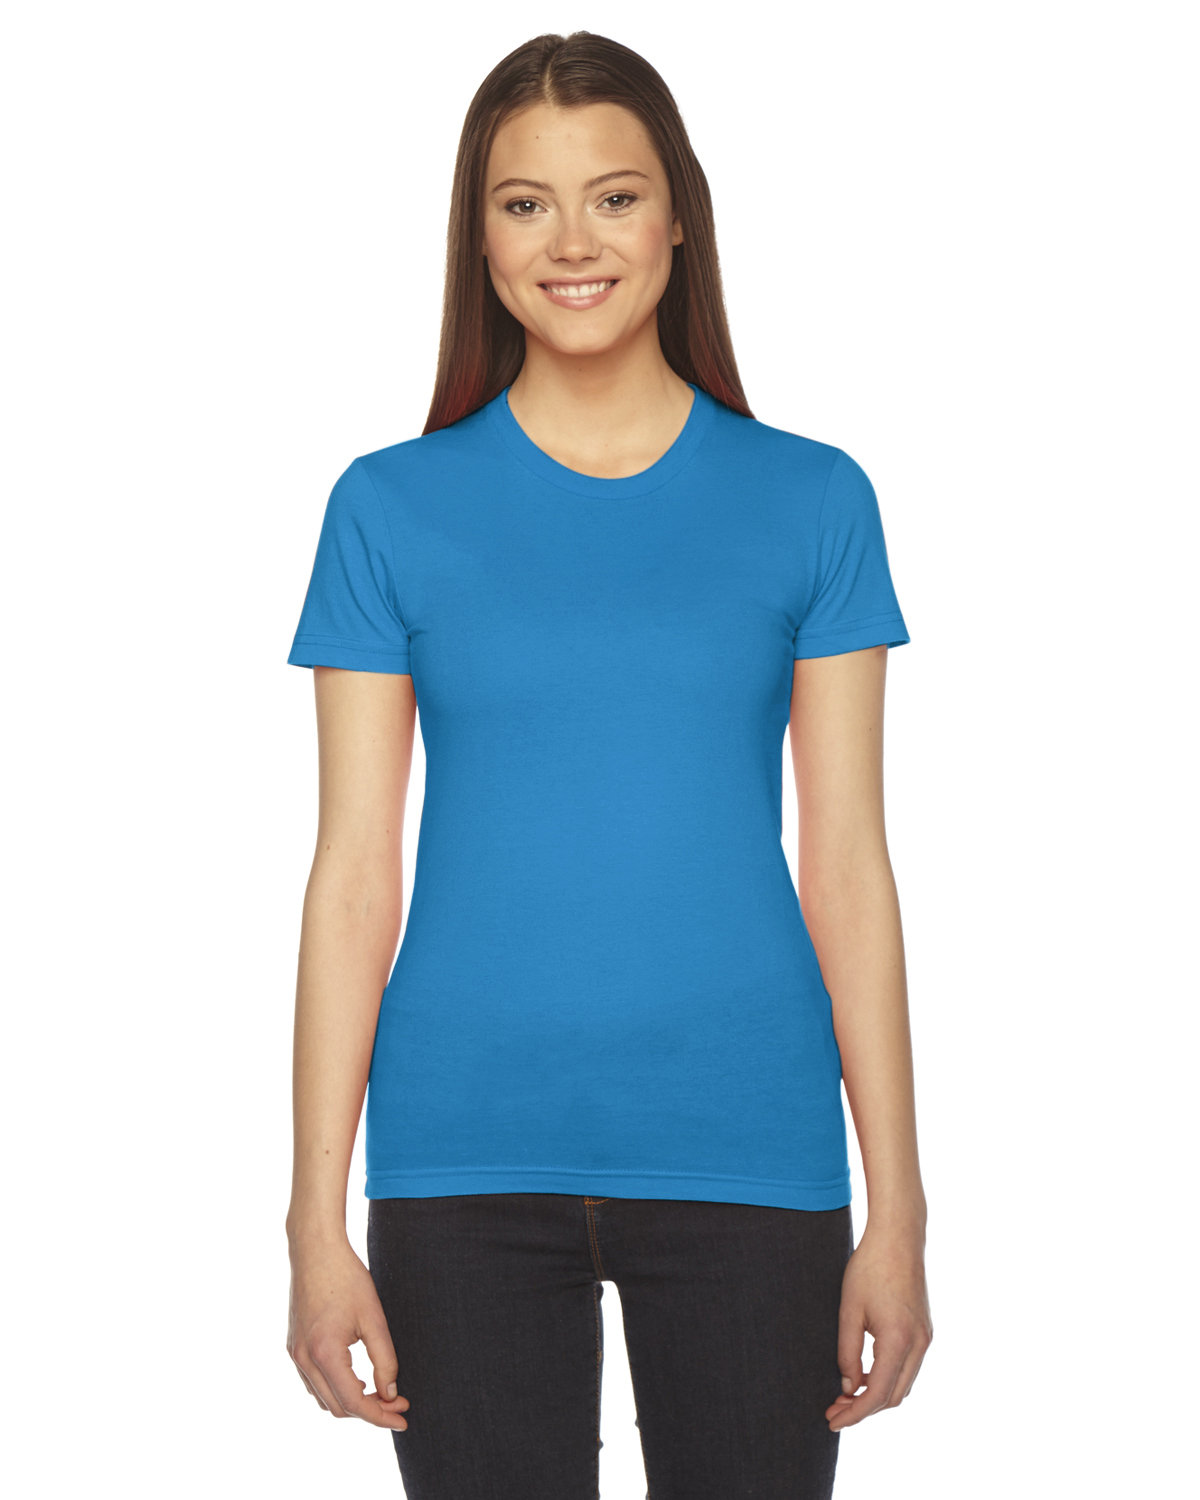 American Apparel Ladies' Fine Jersey Short-Sleeve T-Shirt TEAL